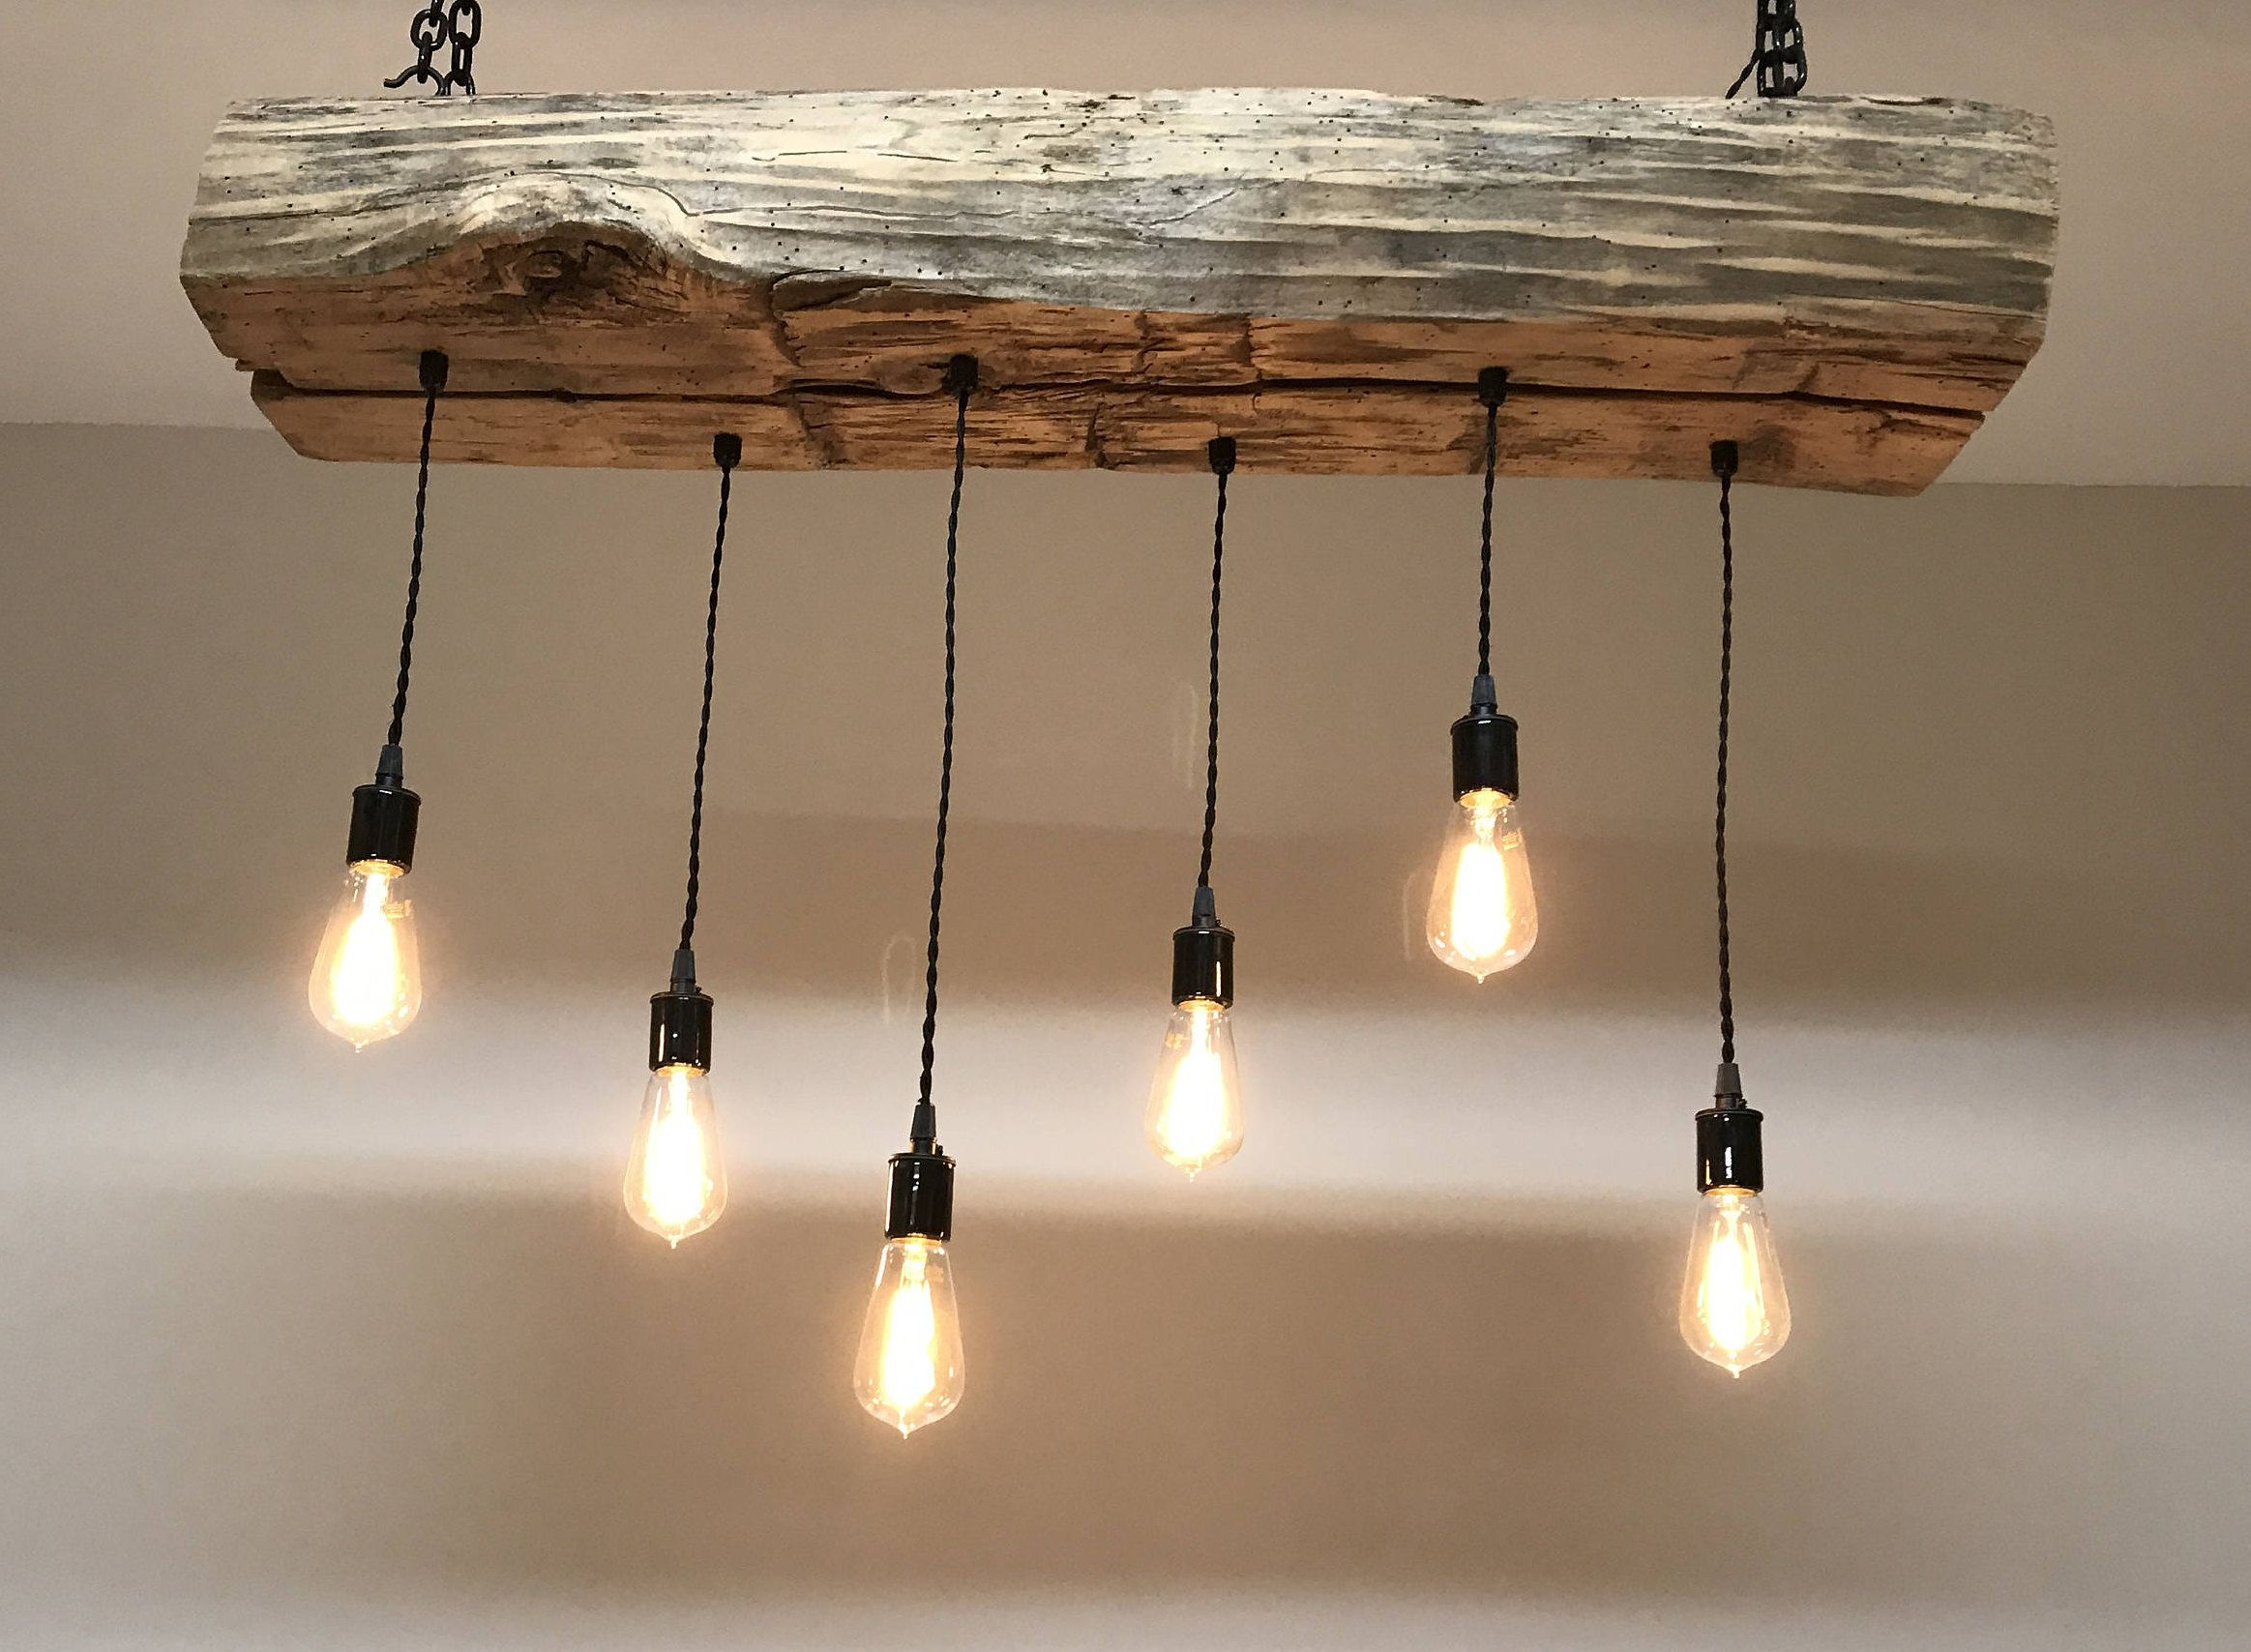 Reclaimed Barn Sleeper Beam Wood Light Fixture With Led Edison Pendant Lights Rustic Rustic Light Fixtures Rustic Industrial Light Fixtures Wood Light Fixture